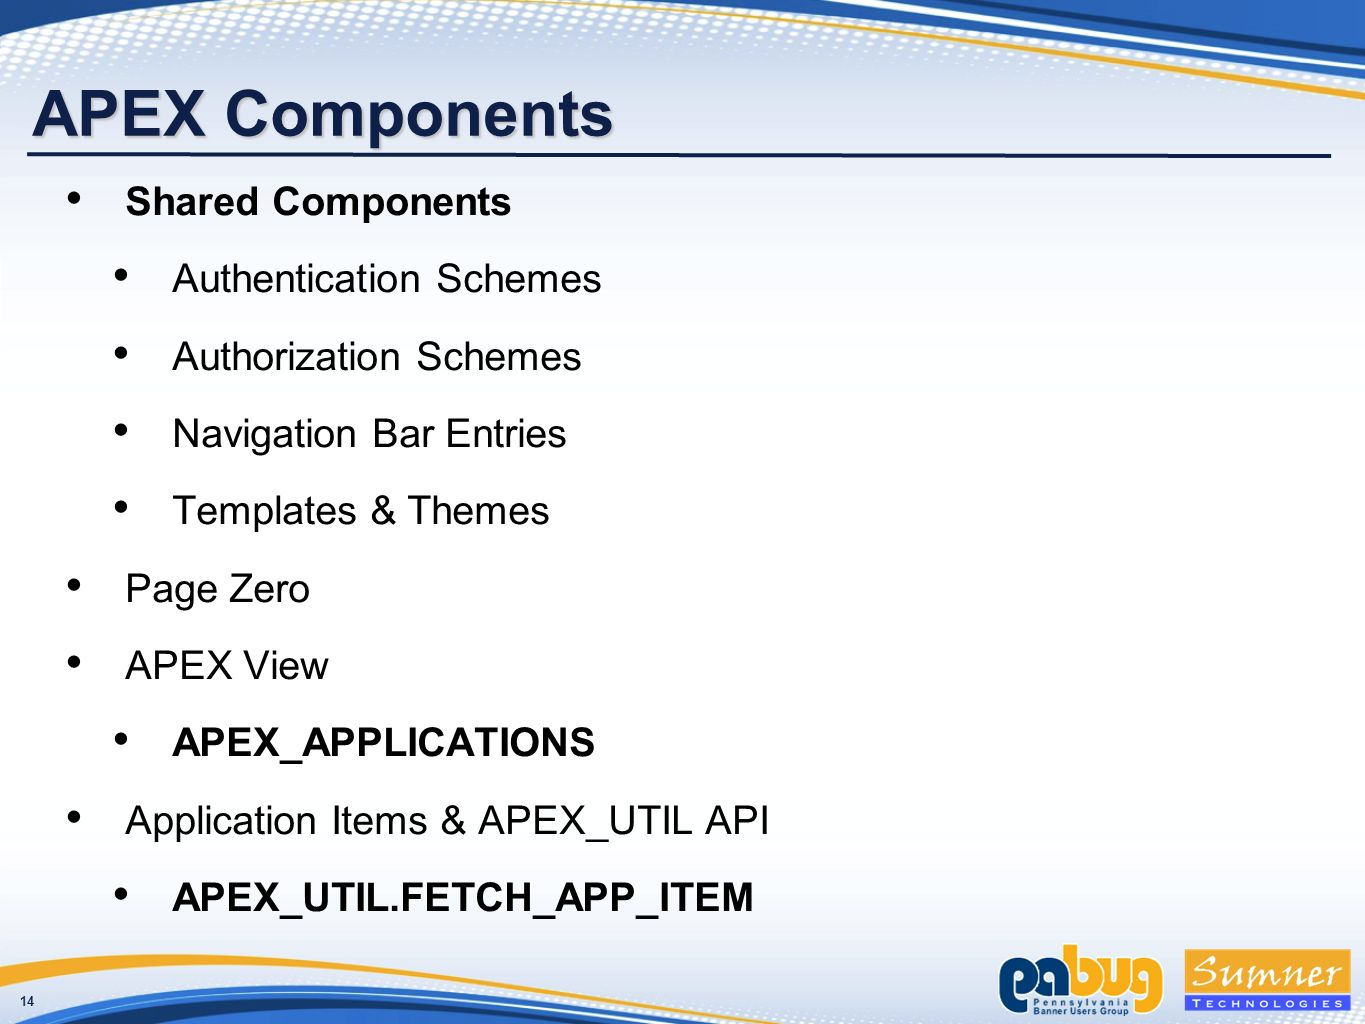 14 APEX Components Shared Components Authentication Schemes Authorization Schemes Navigation Bar Entries Templates & Themes Page Zero APEX View APEX_APPLICATIONS Application Items & APEX_UTIL API APEX_UTIL.FETCH_APP_ITEM